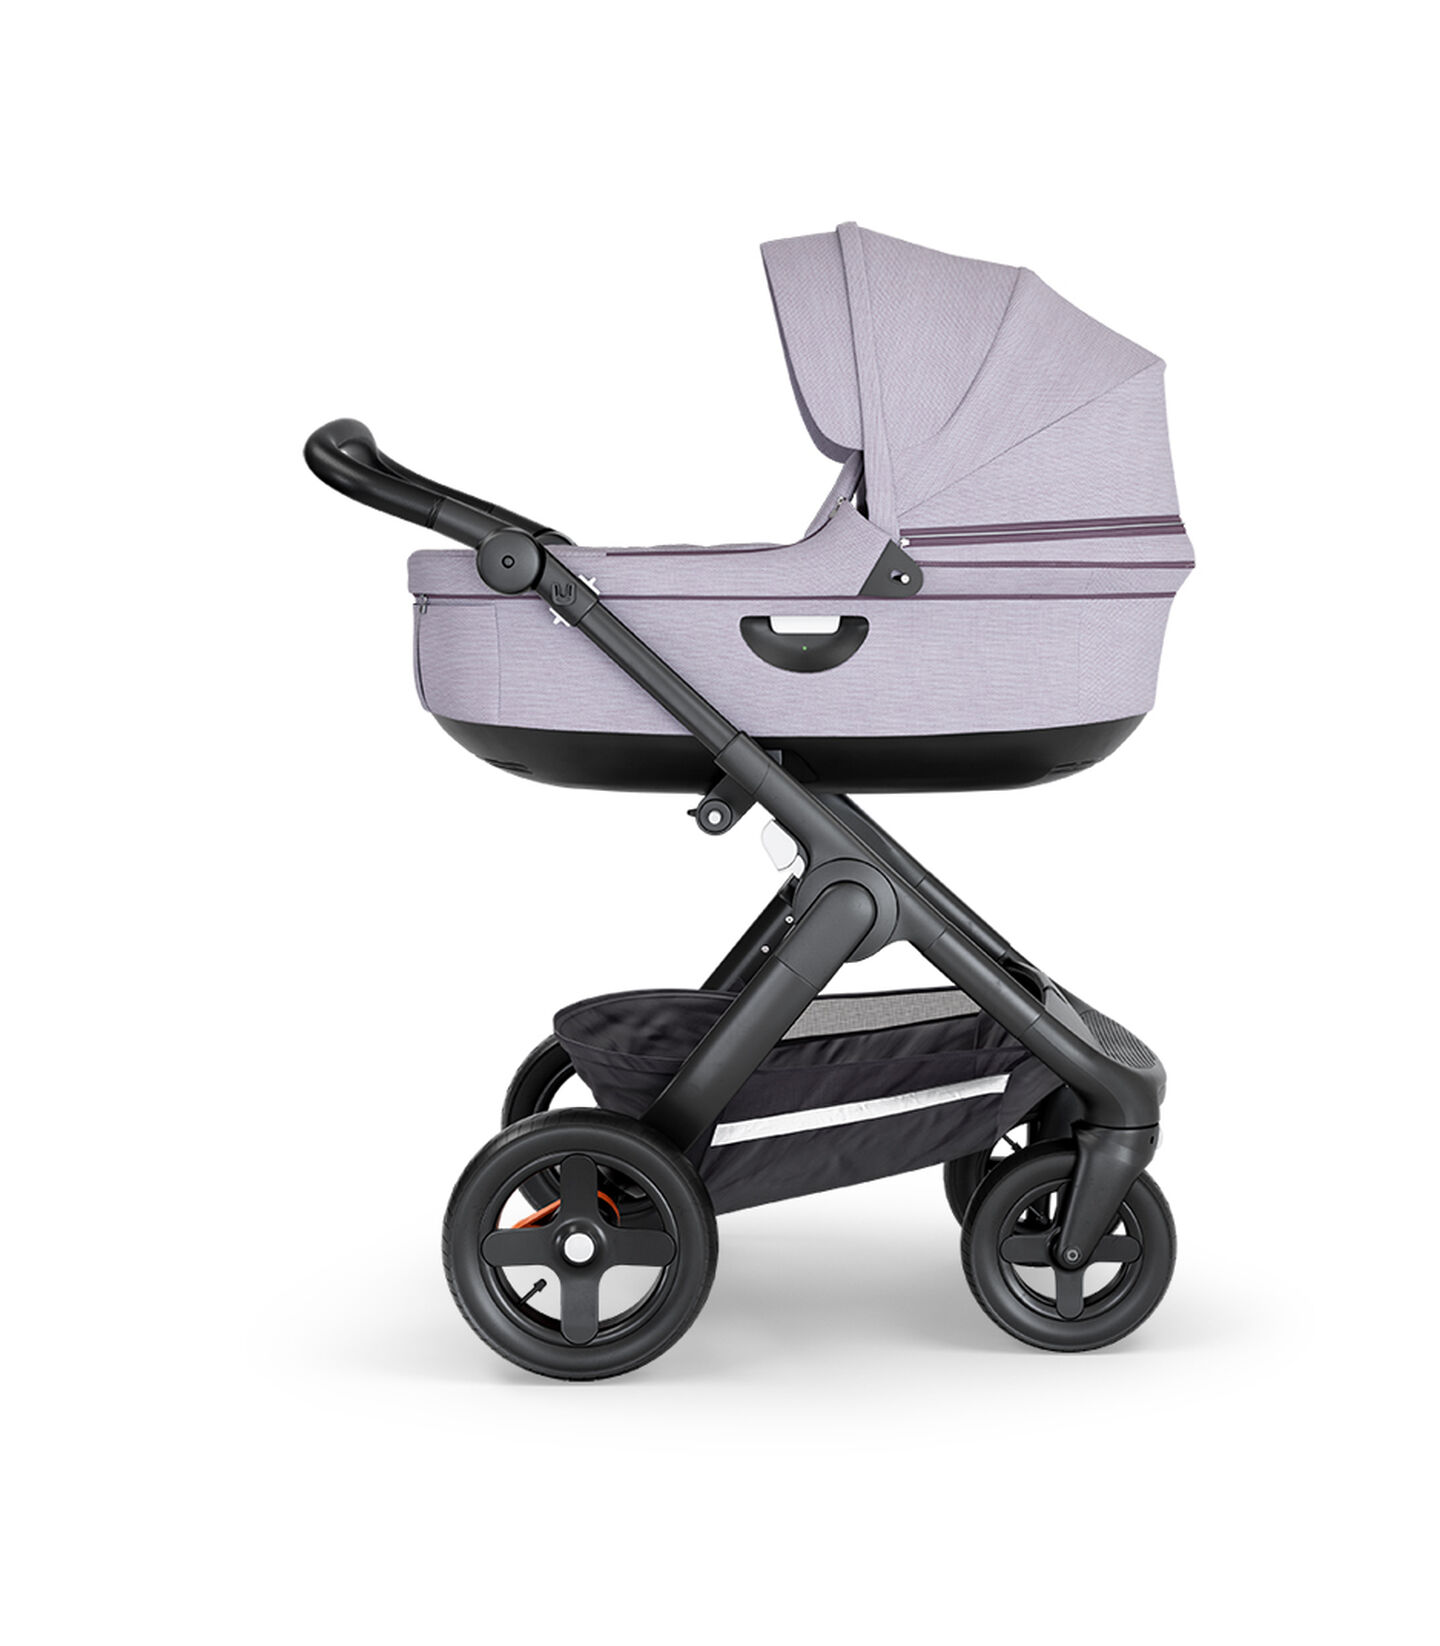 Stokke® Trailz™ with Black Chassis, Black Leatherette and Terrain Wheels. Stokke® Stroller Carry Cot, Brushed Lilac.